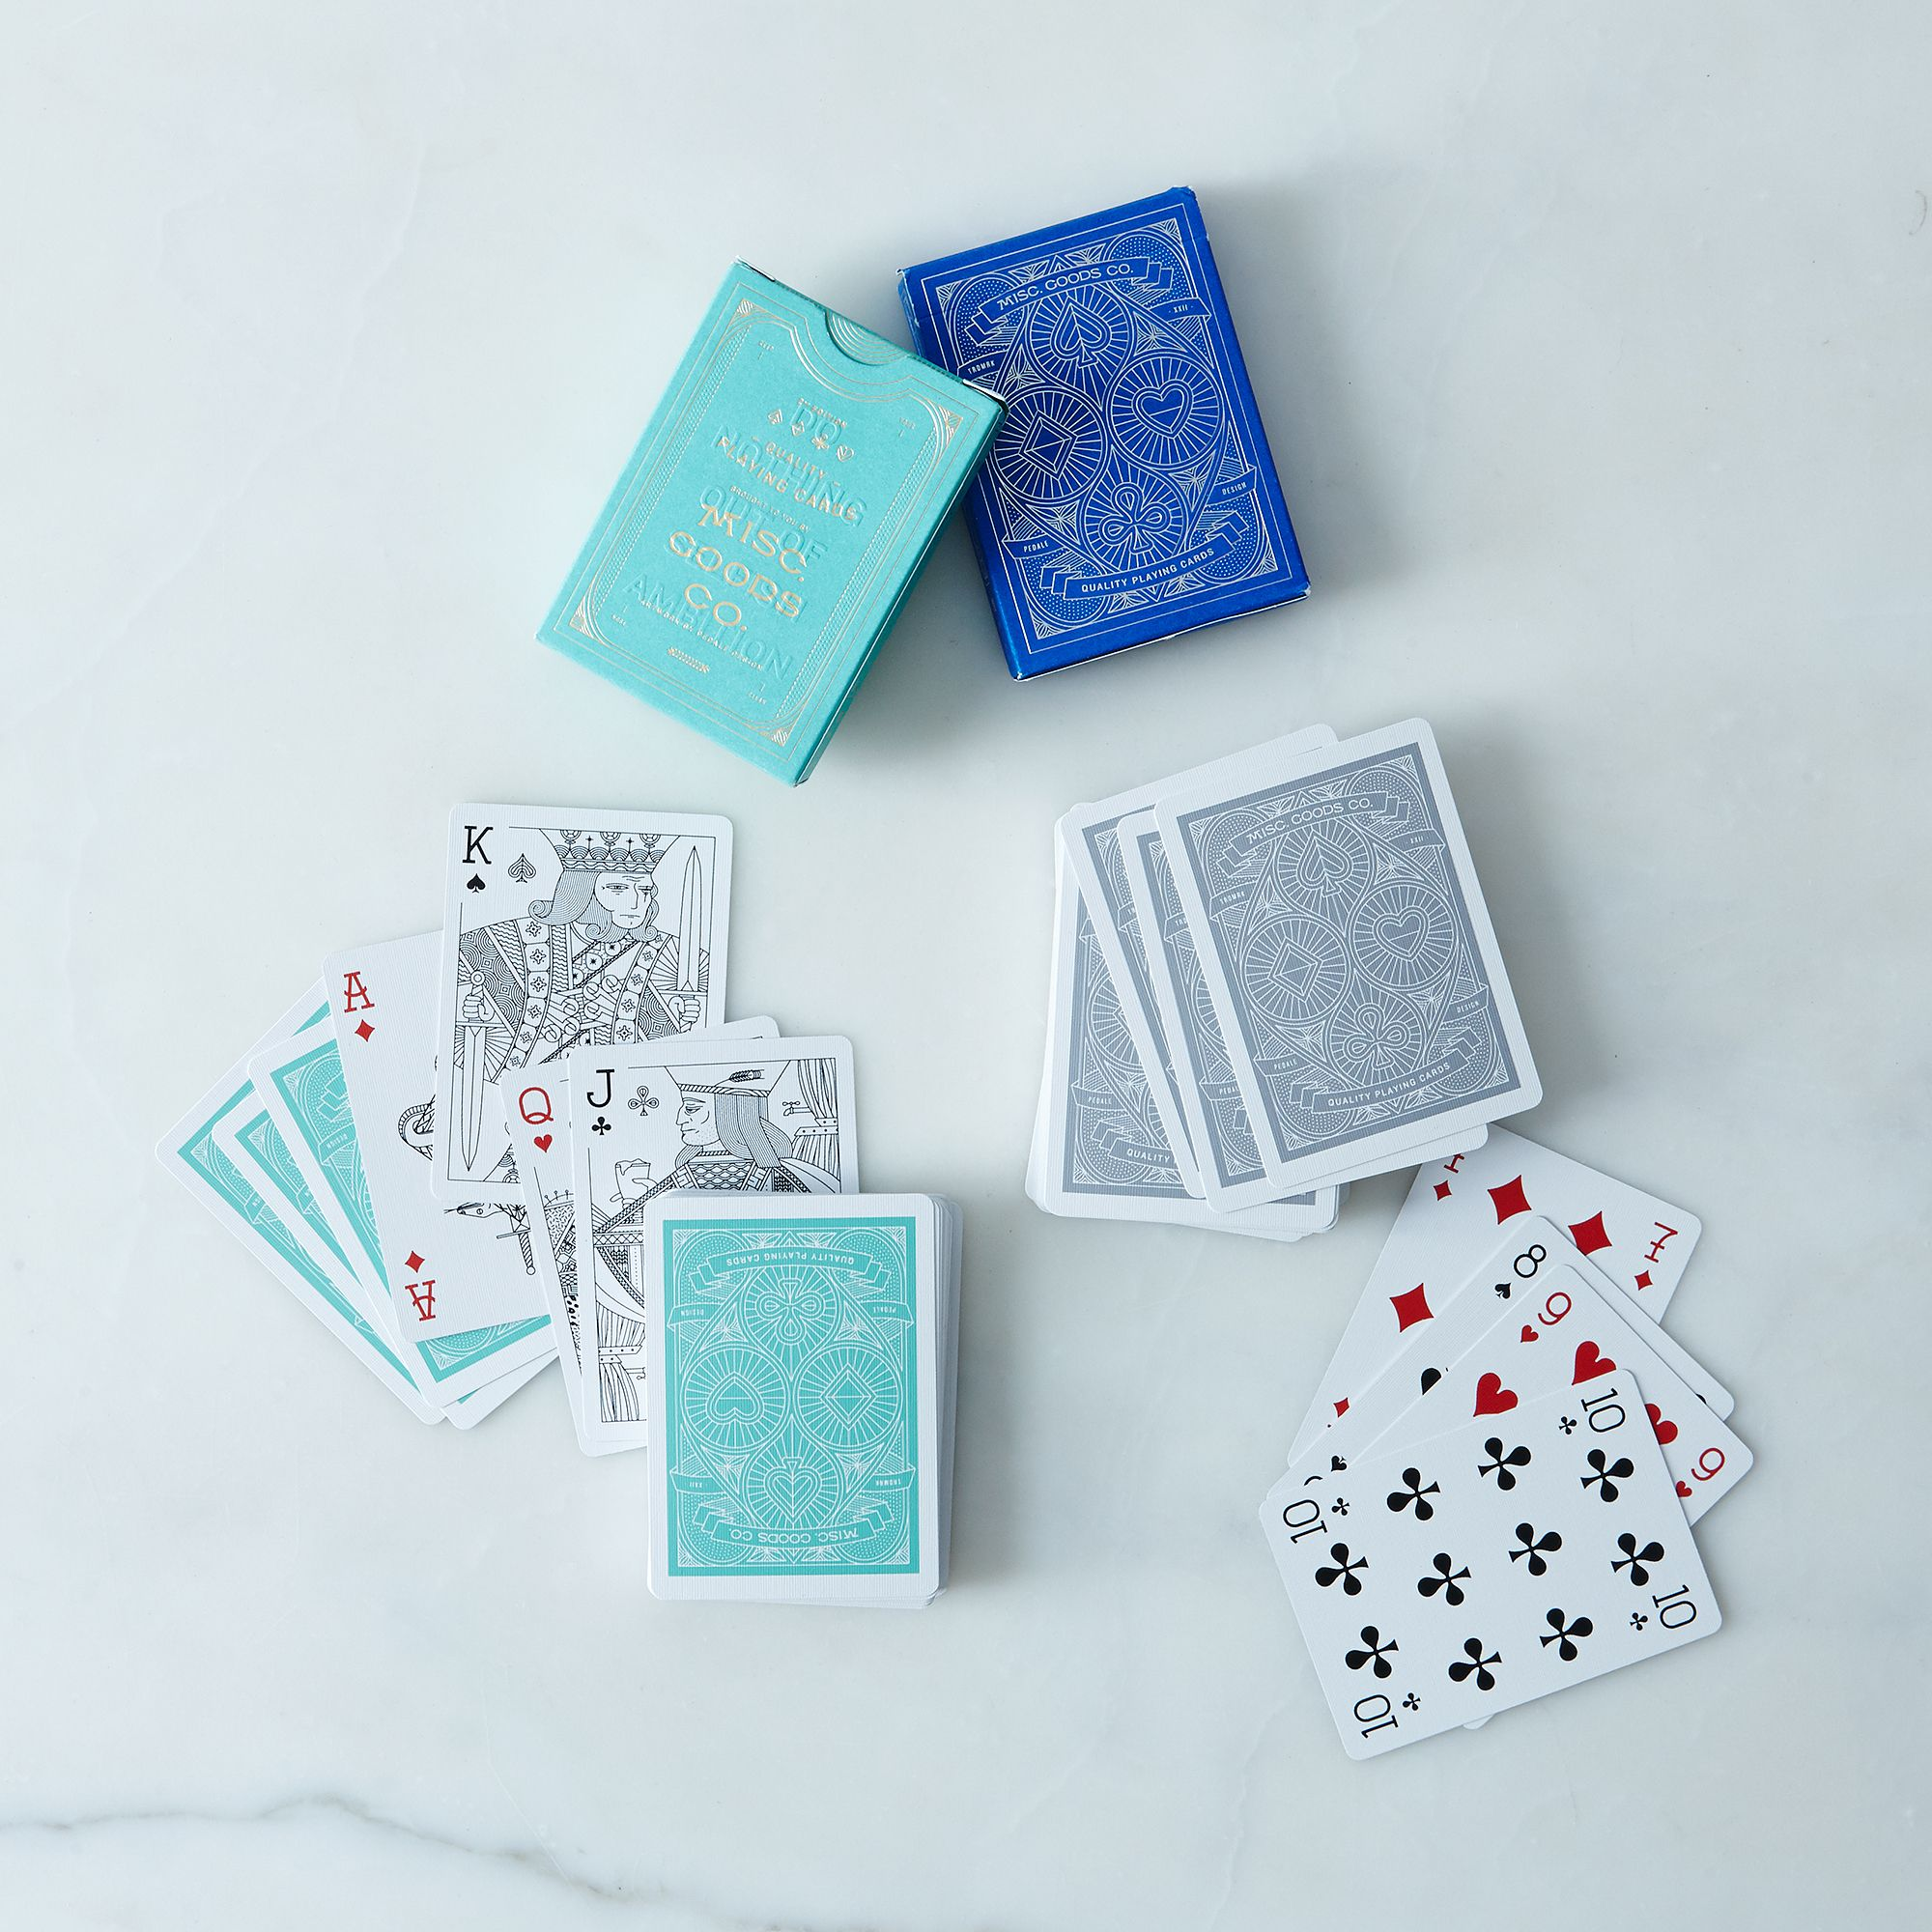 5d8d0224 a0f8 11e5 a190 0ef7535729df  2015 0510 misc goods playing cards turqouise cobalt set of 2 silo rocky luten 0703